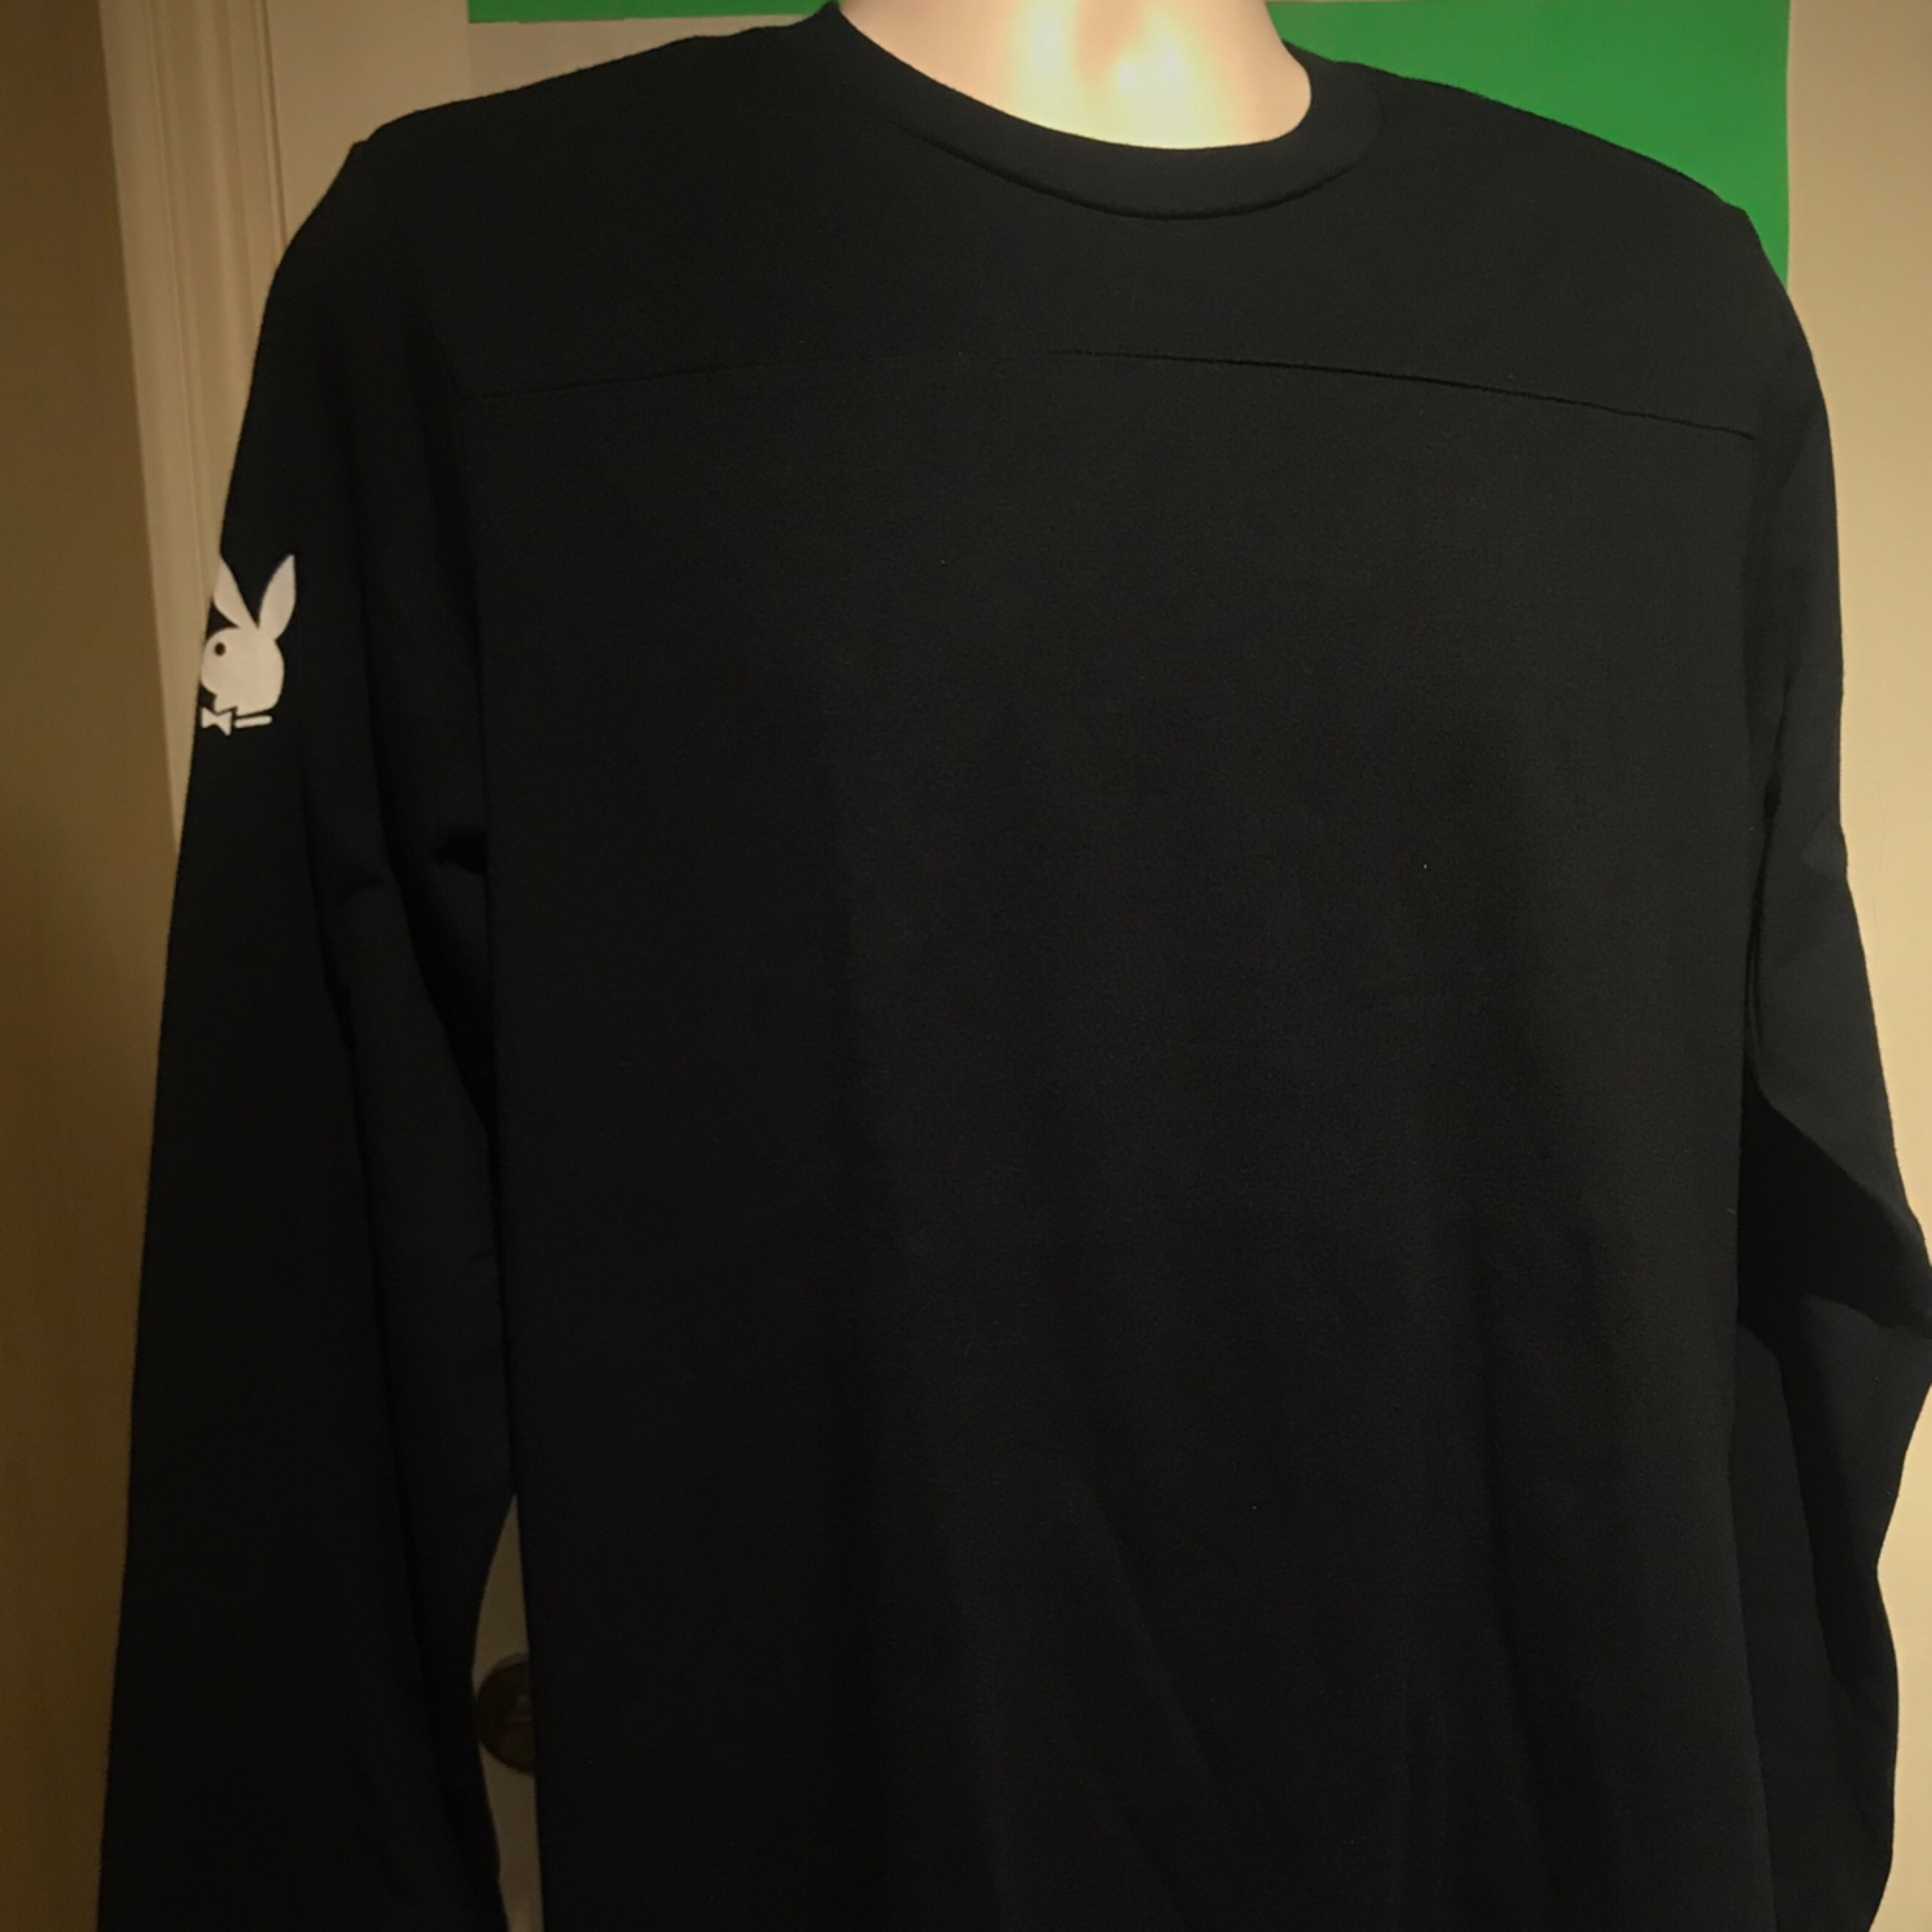 Fw17 Supreme X Playboy Football Top L/S Tee